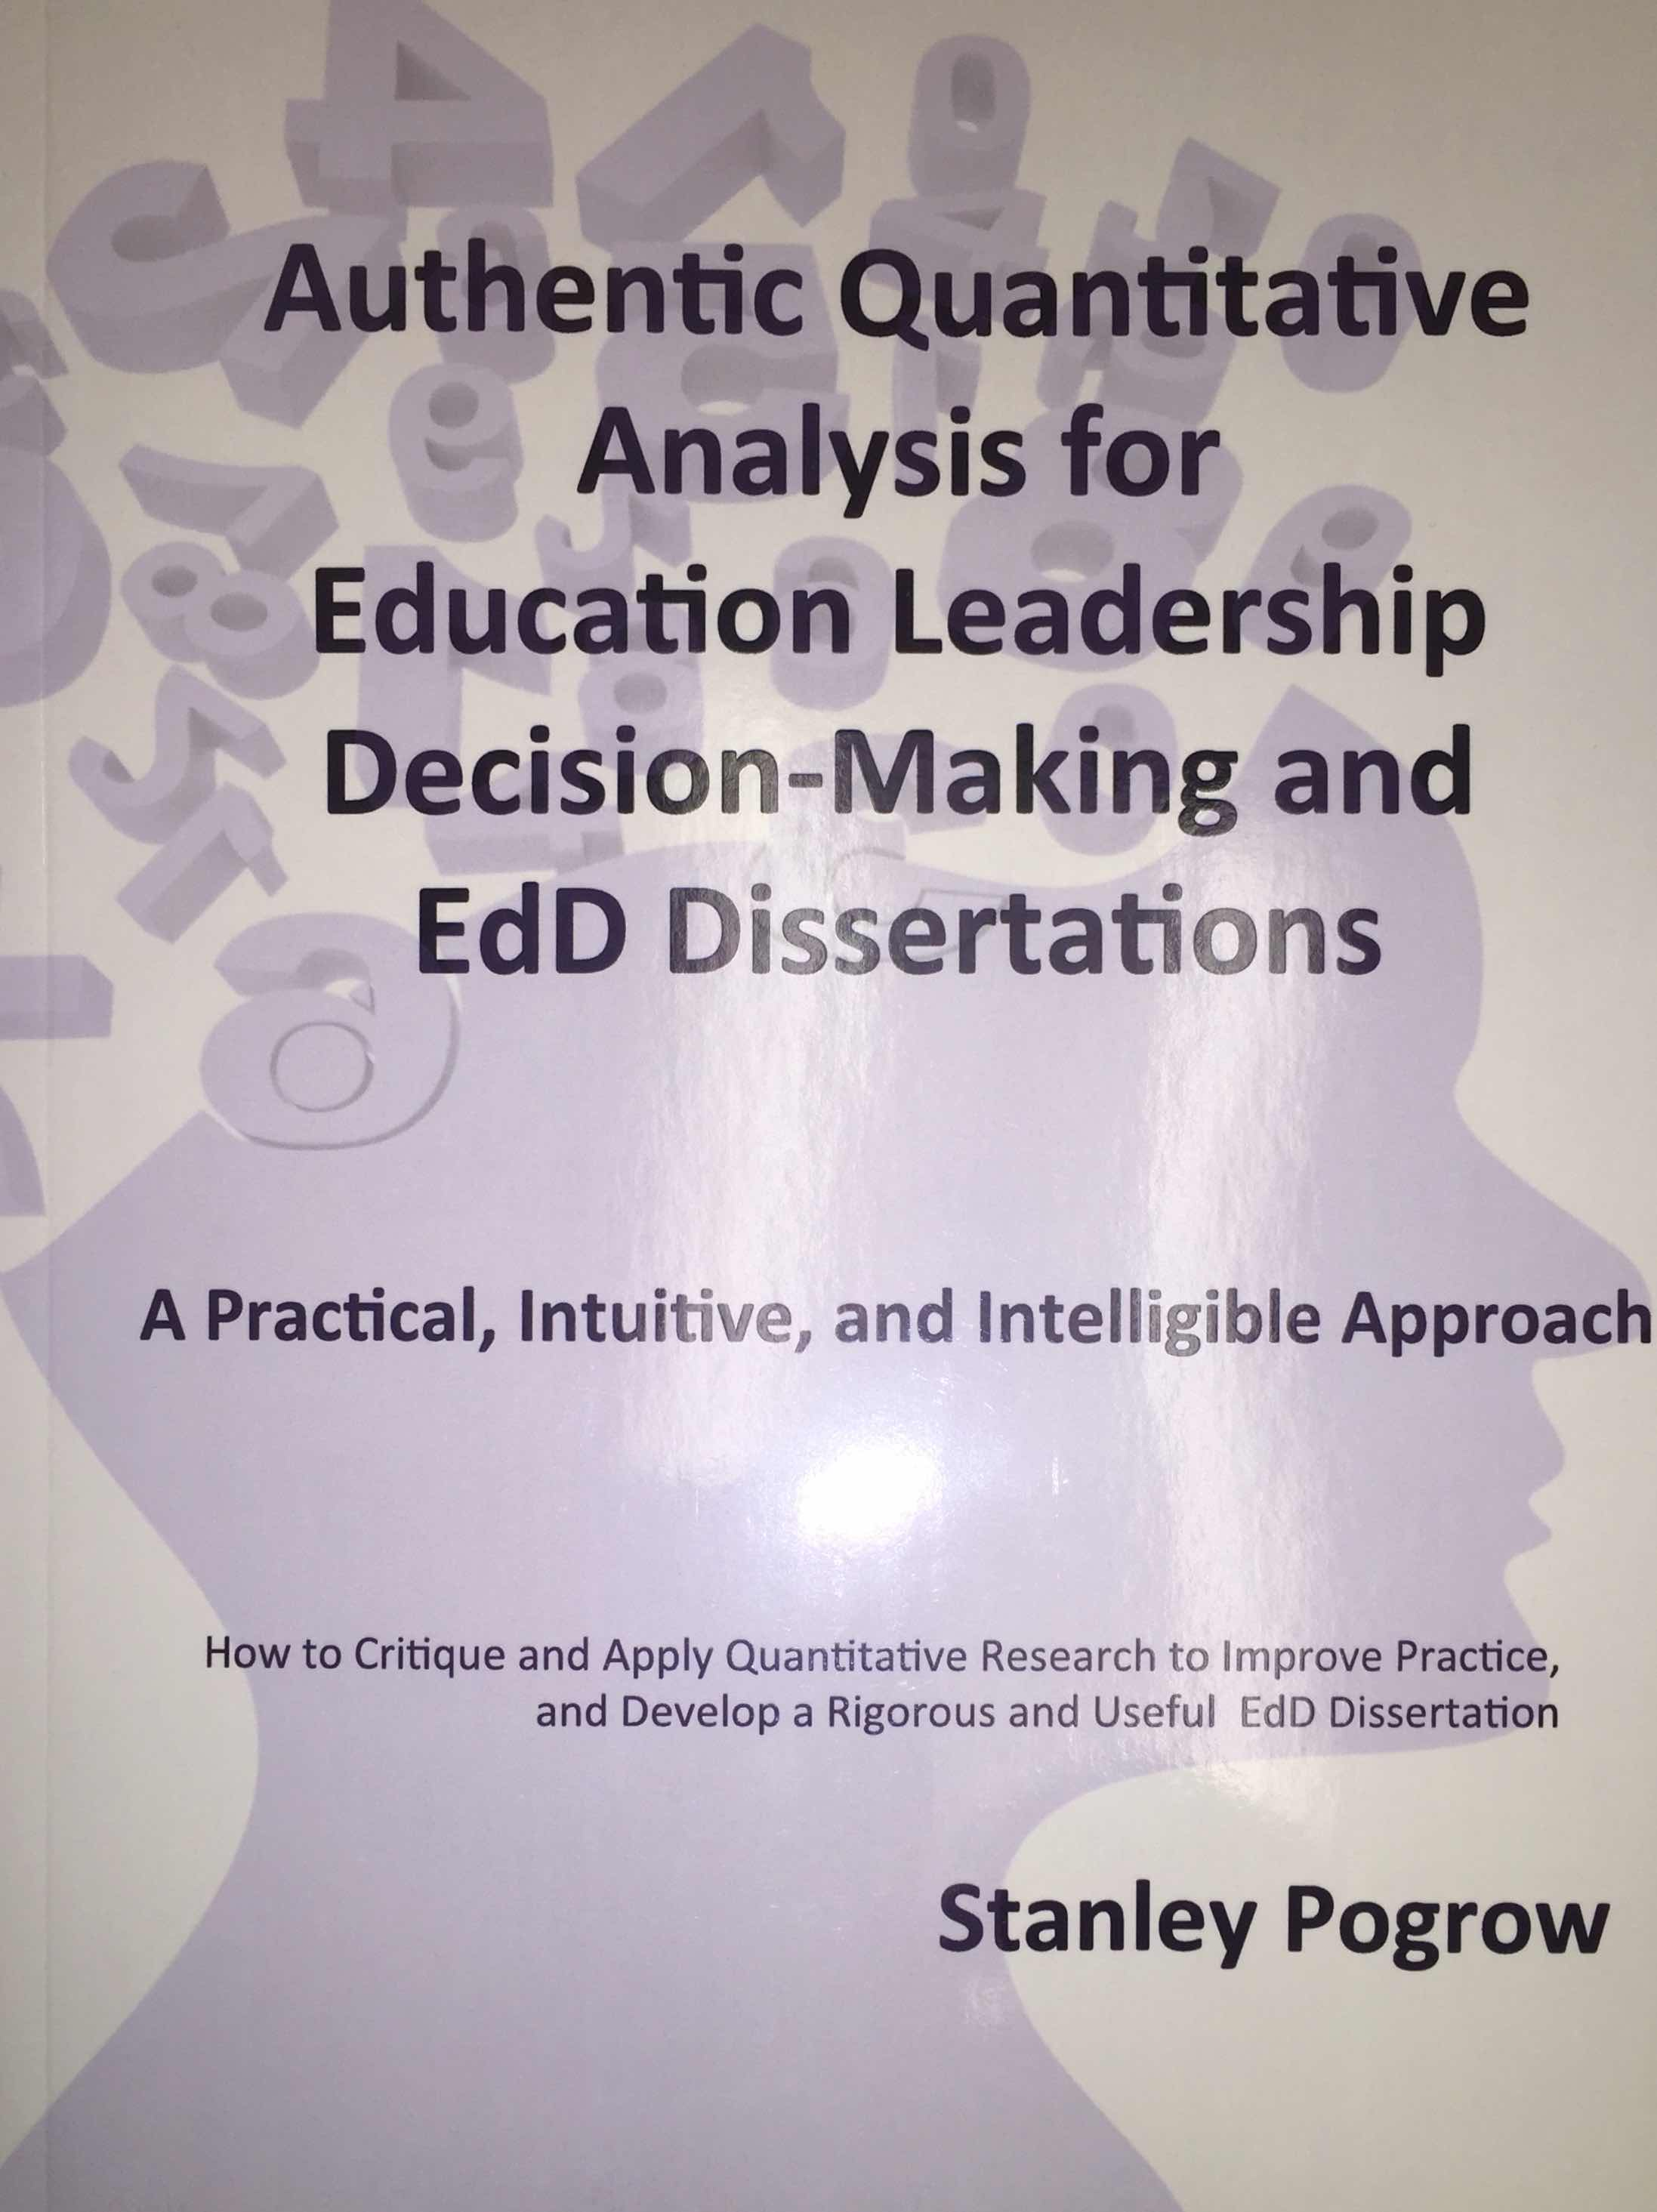 Dissertation topics in educational leadership